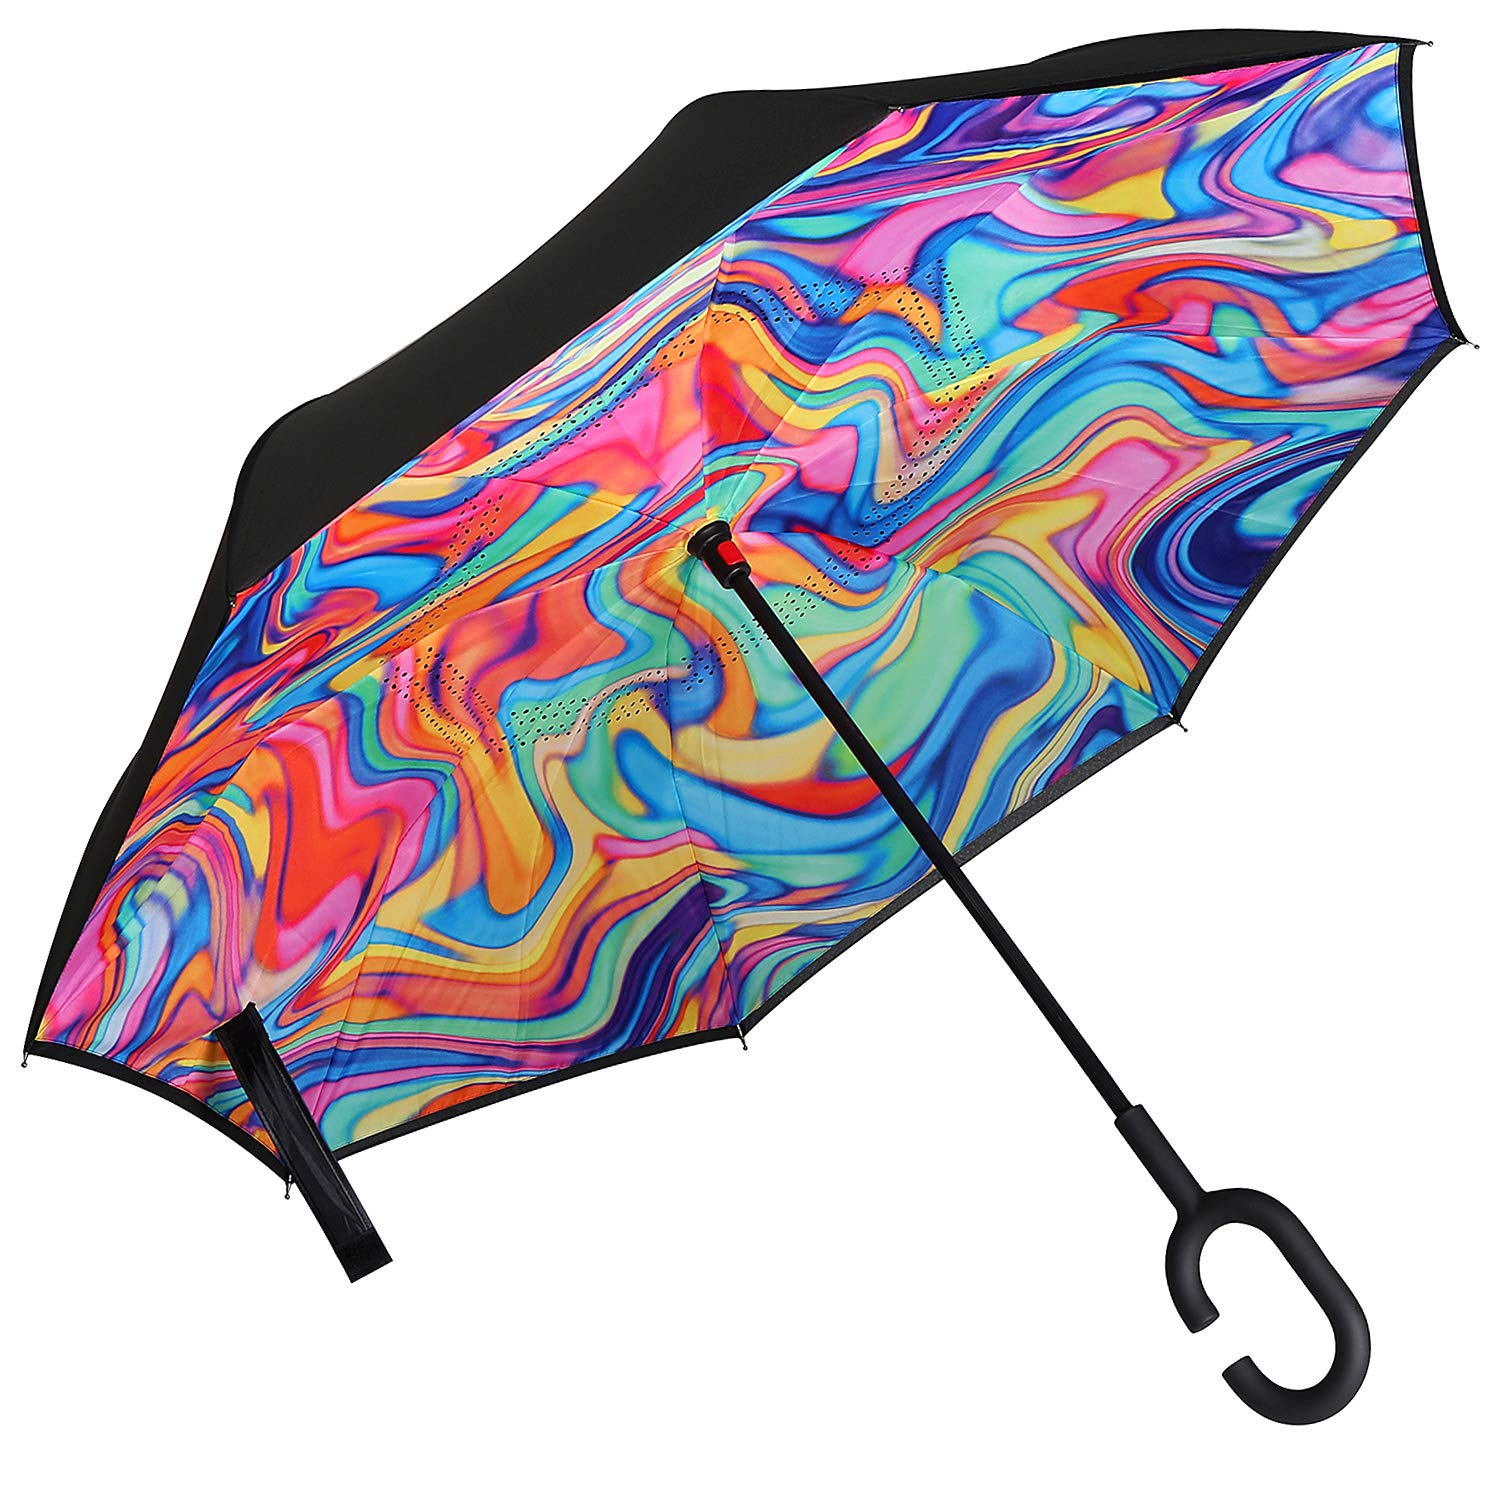 Owen Kyne Windproof Double Layer Folding Inverted Umbrella, Self Stand Upside-Down Rain Protection Car Reverse Umbrellas with C-Shaped Handle (Rainbow Vortex) by Owen Kyne